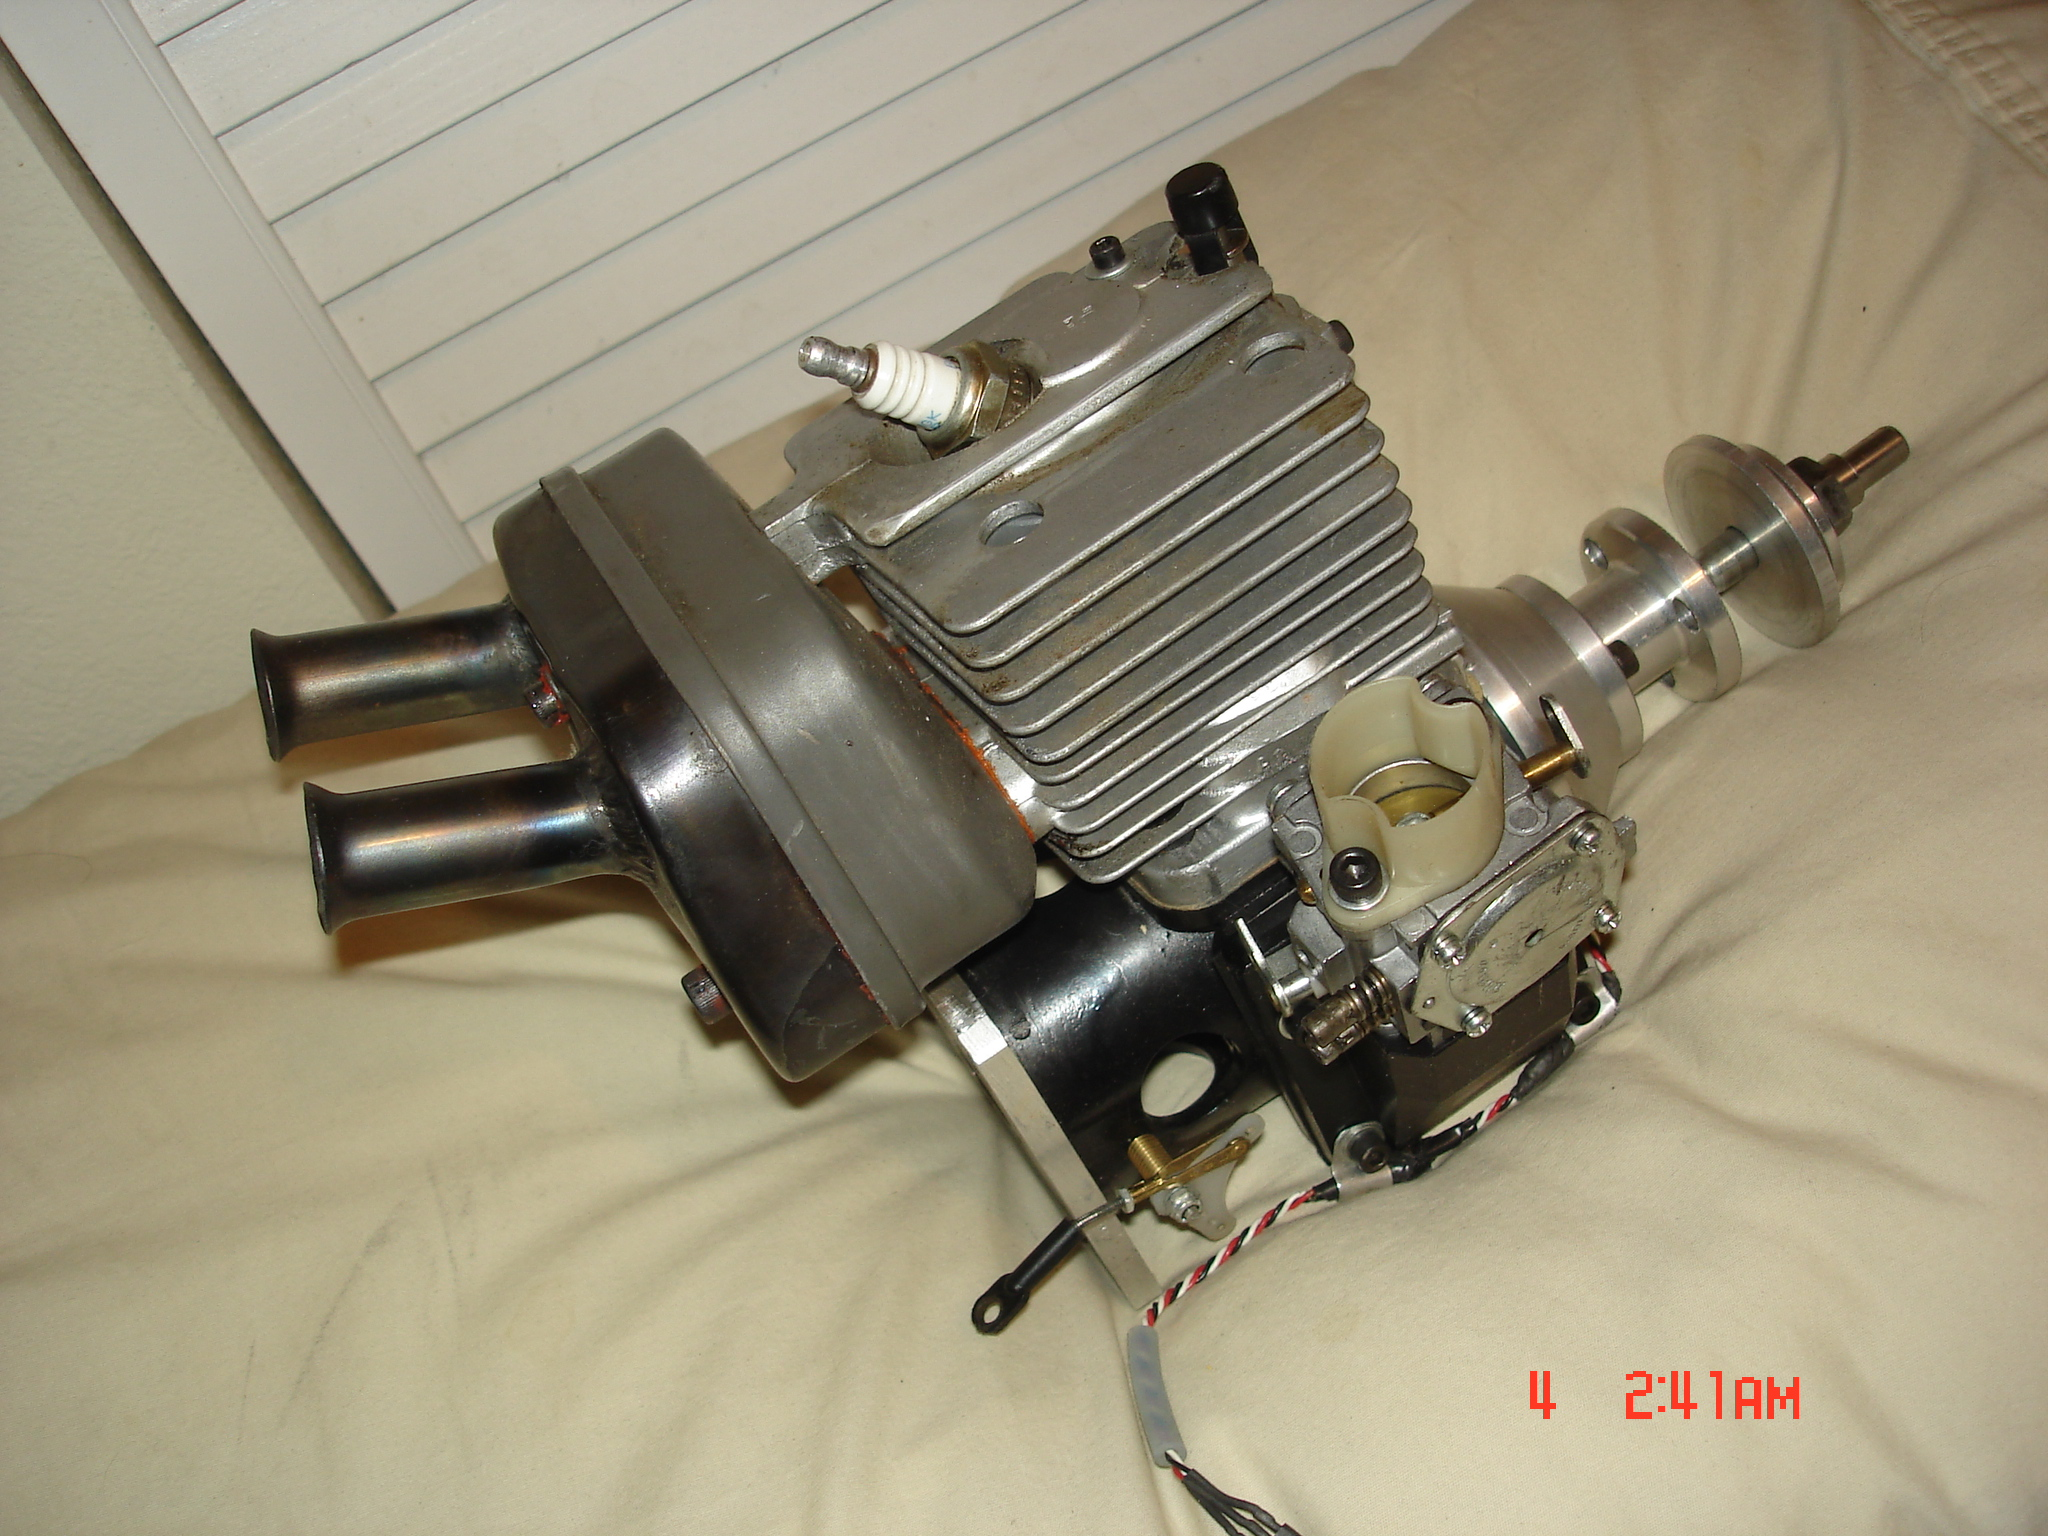 Click image for larger version  Name:Van engines 010.JPG Views:28 Size:1.16 MB ID:1970644